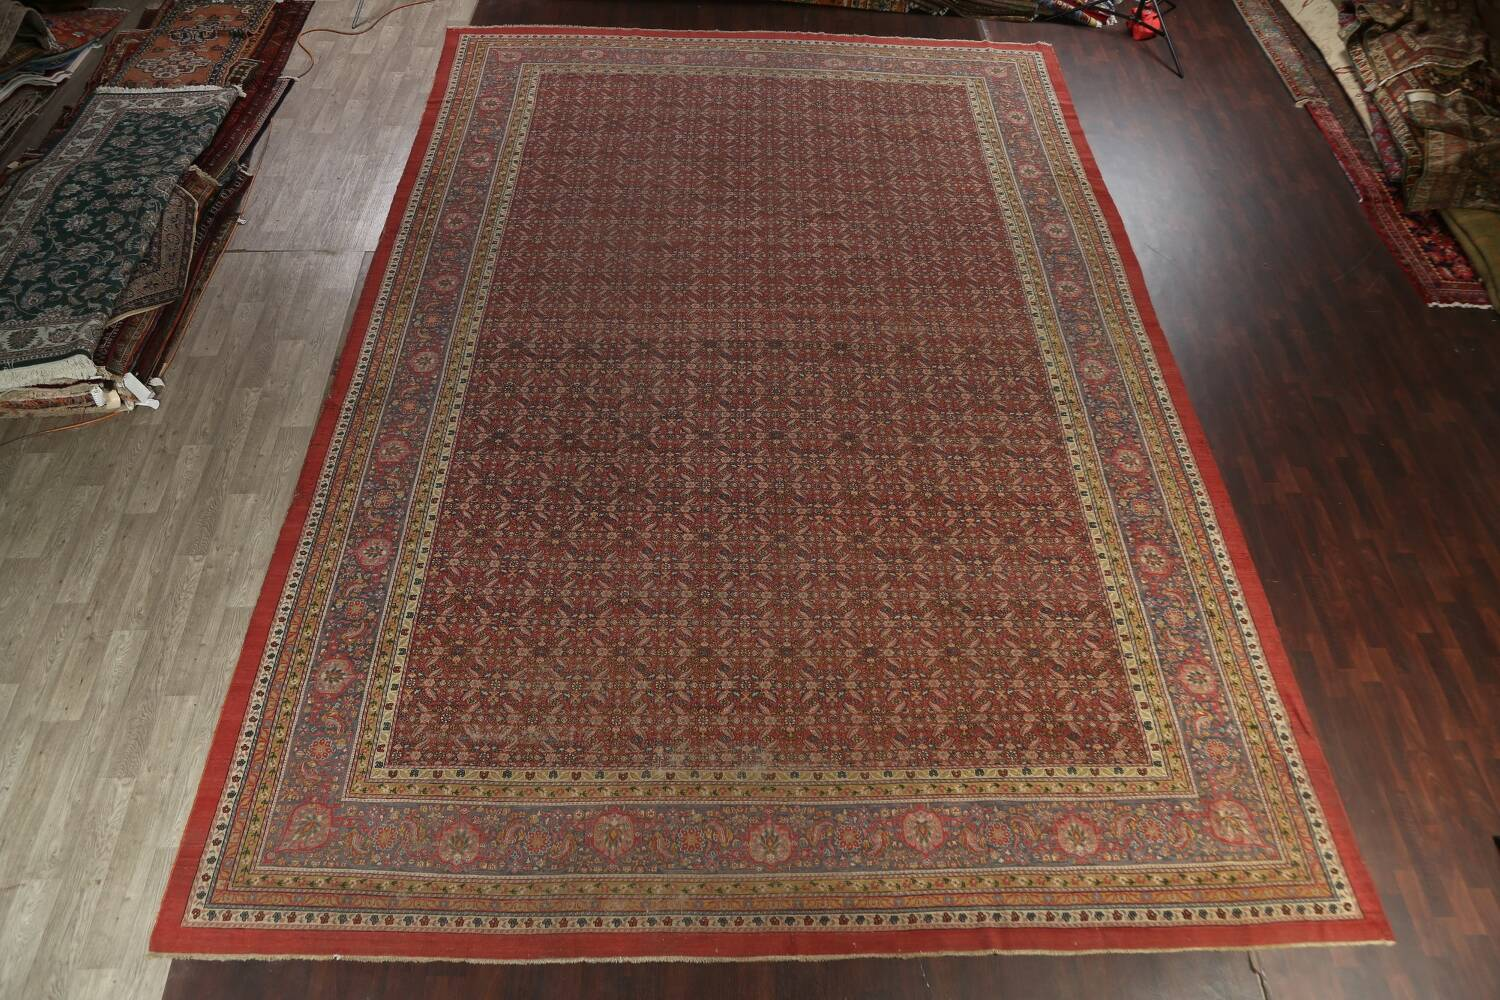 Antique Vegetable Dye Sultanabad Persian Rug 13x20 image 2